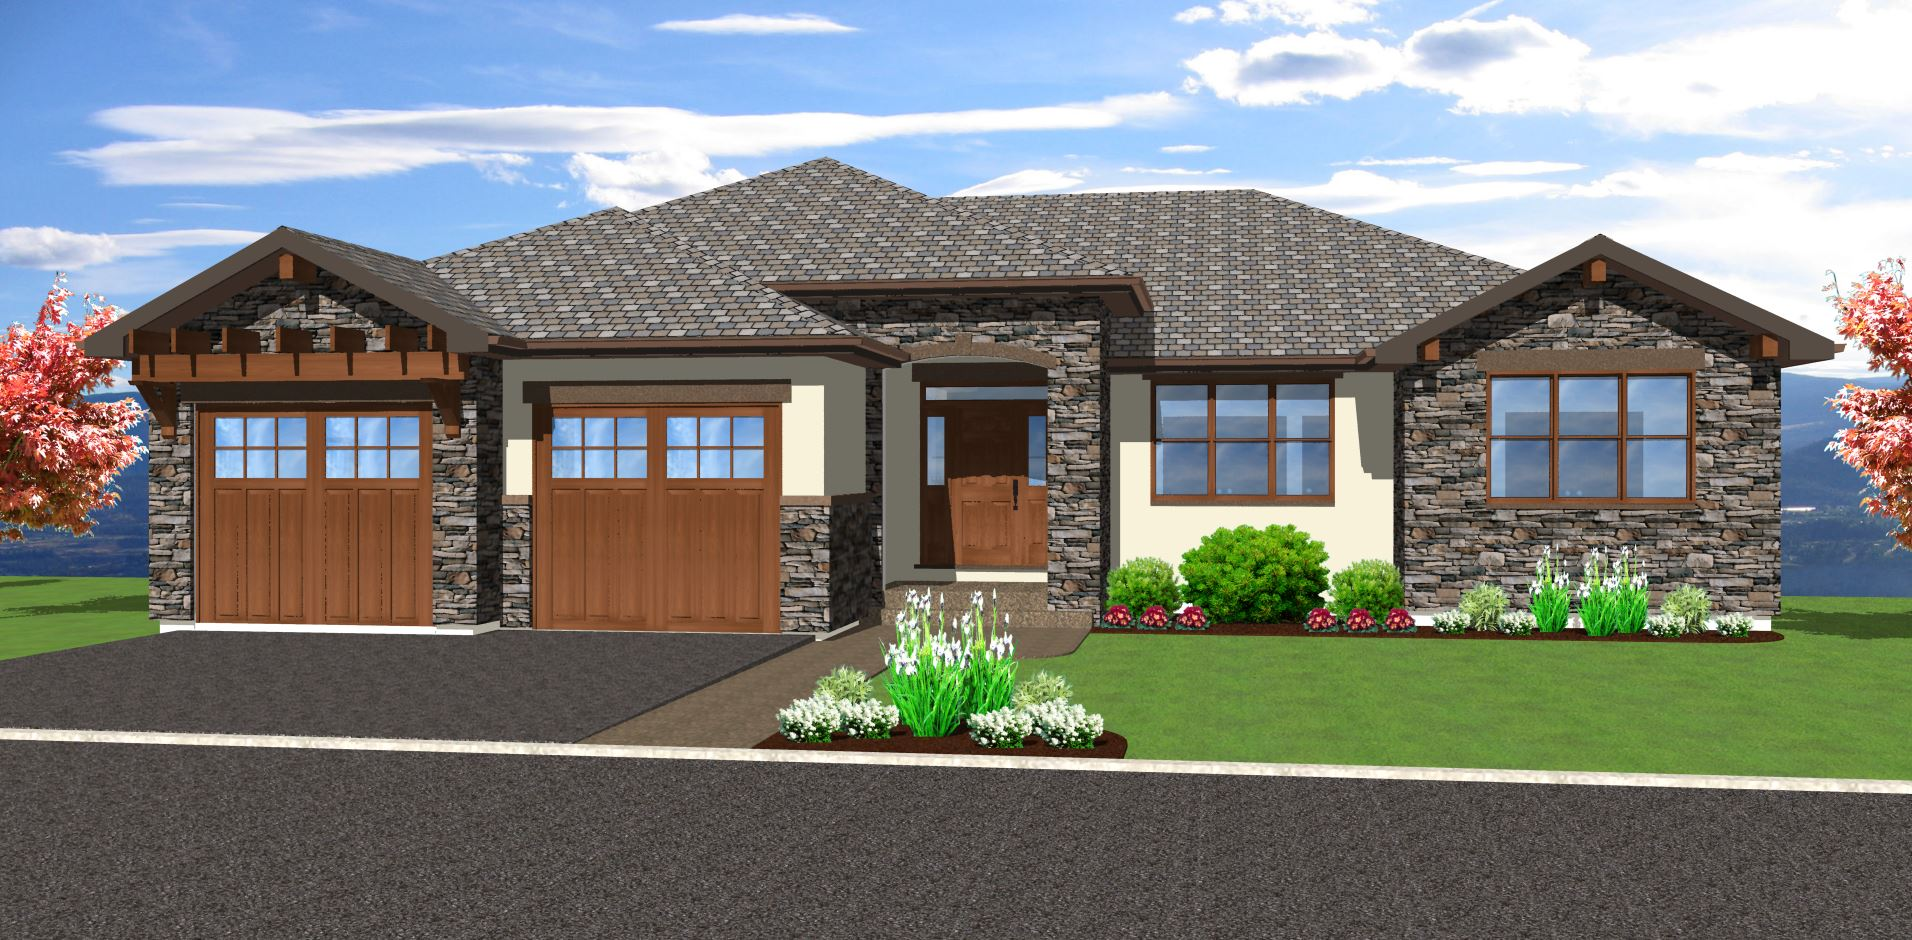 Spacious hillside home with walkout basement 67702mg for Modern house plans with basement